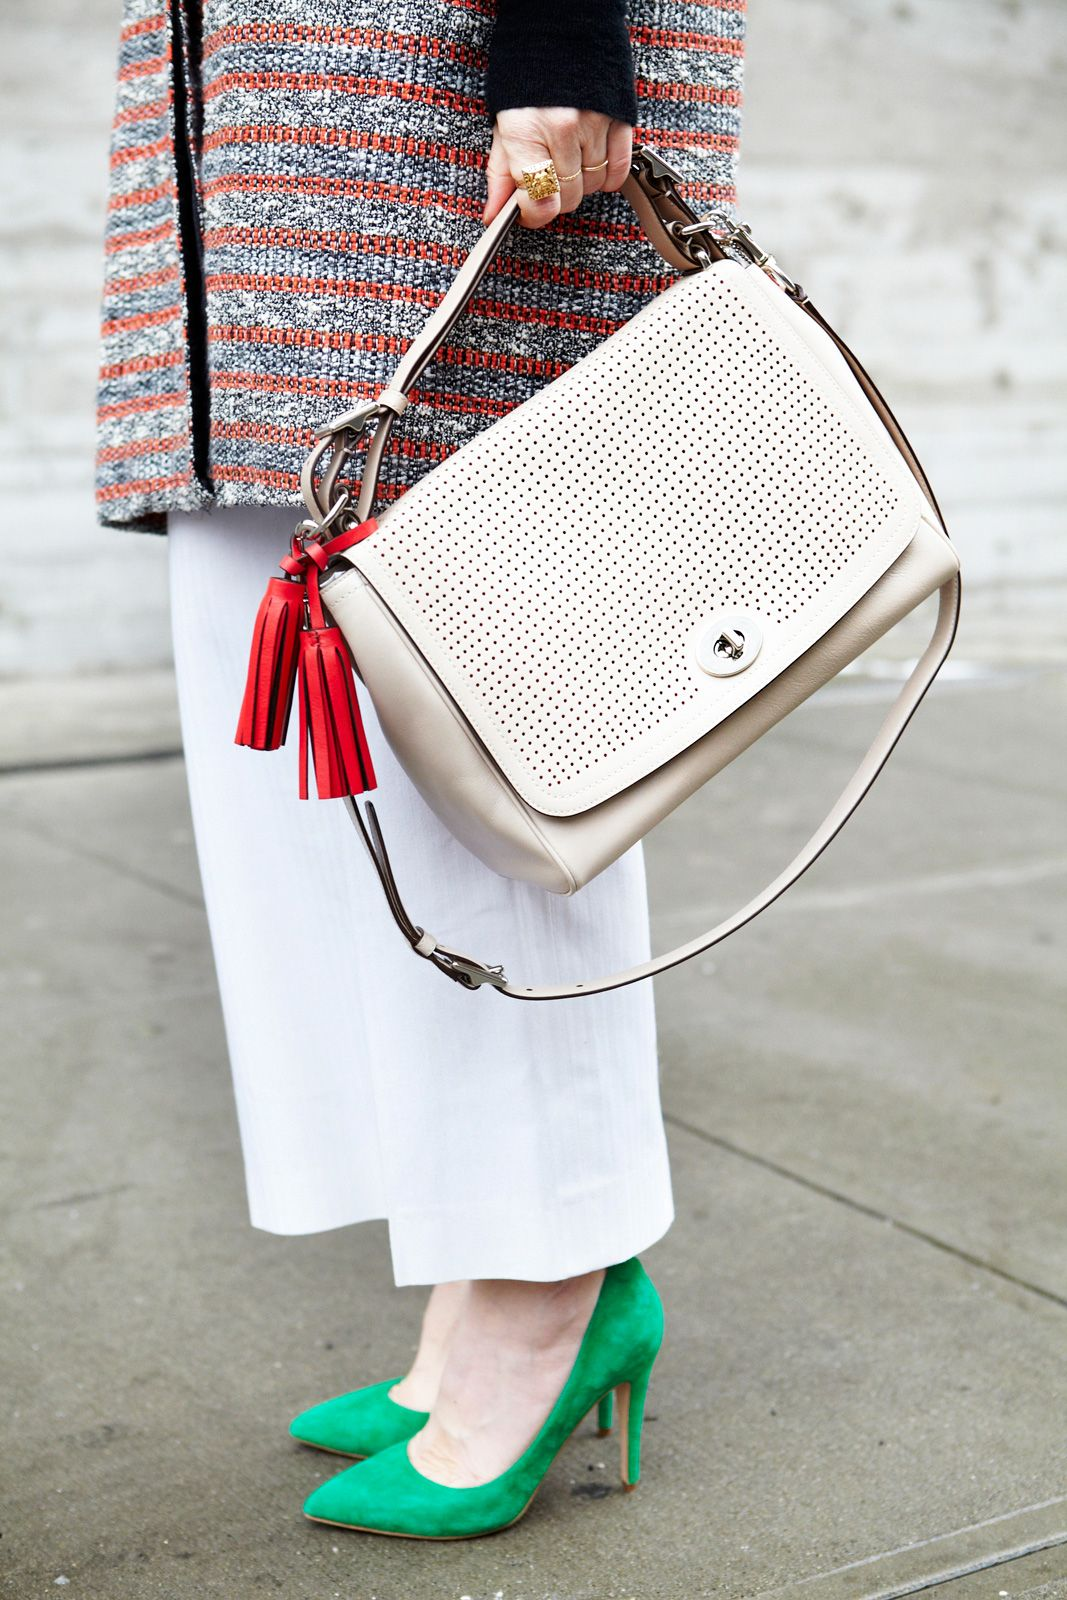 What Our Editors Wore To NYFW #refinery29  http://www.refinery29.com/43013#slide16  How good is that pop of red and green against all that white?